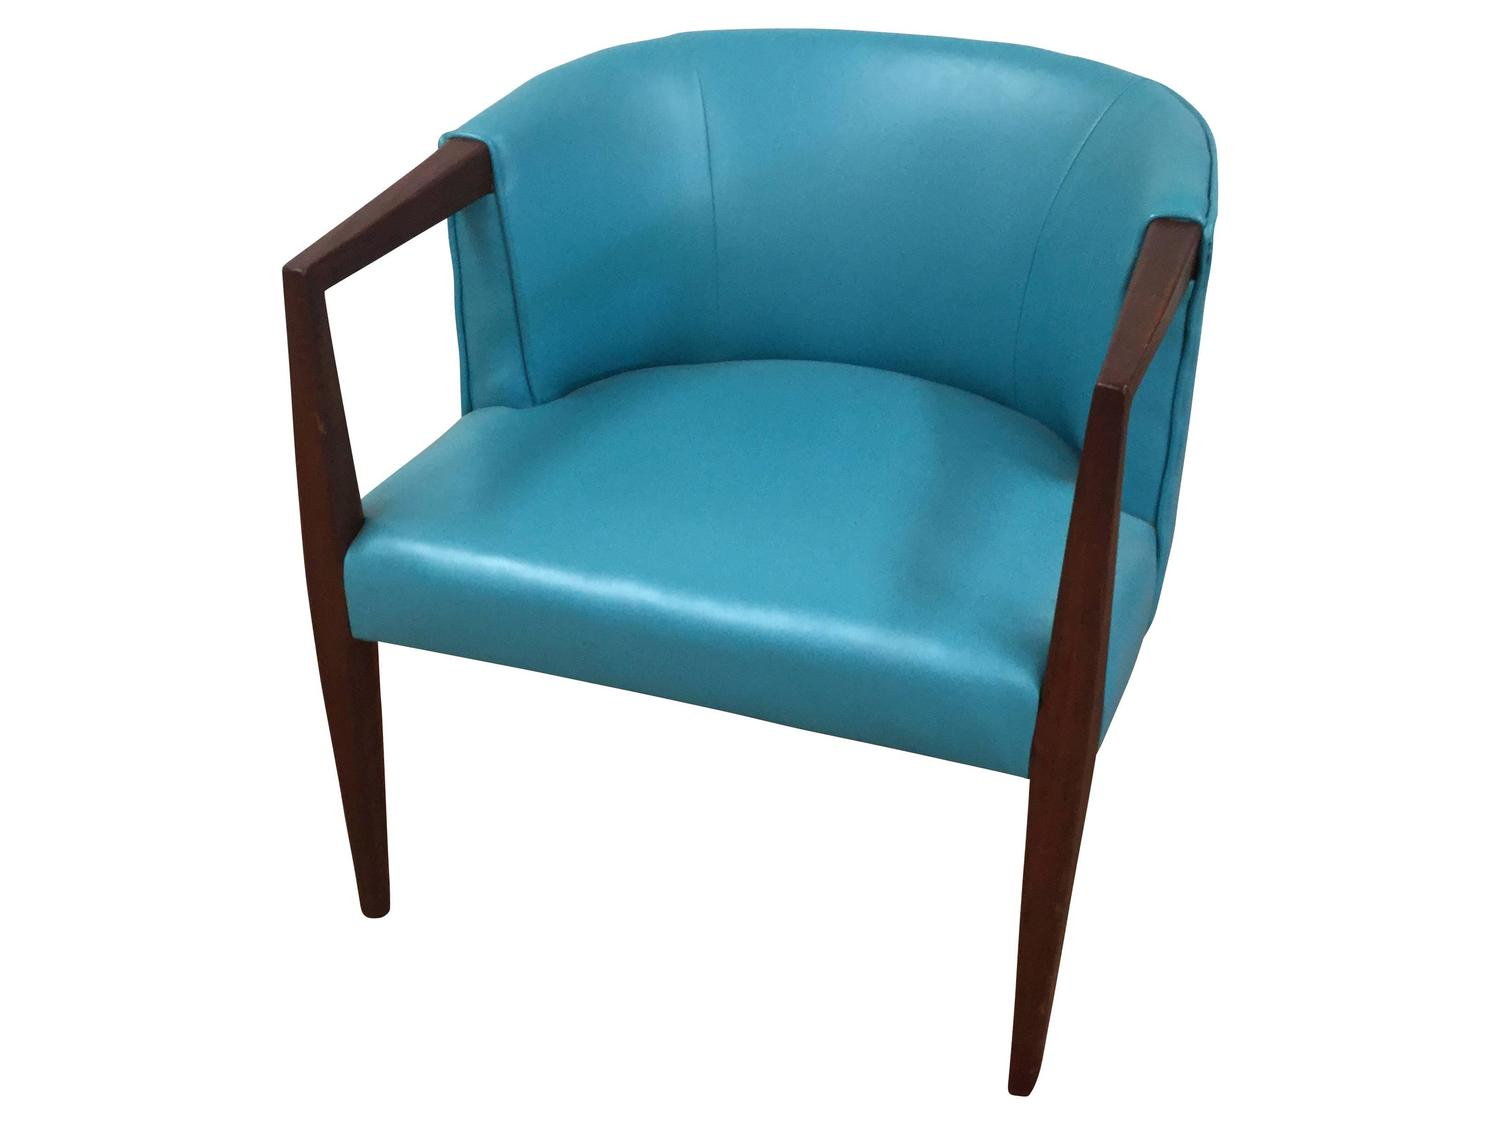 Mid Century Club Chair Mid Century Turquoise Vinyl Club Chair For Sale At 1stdibs